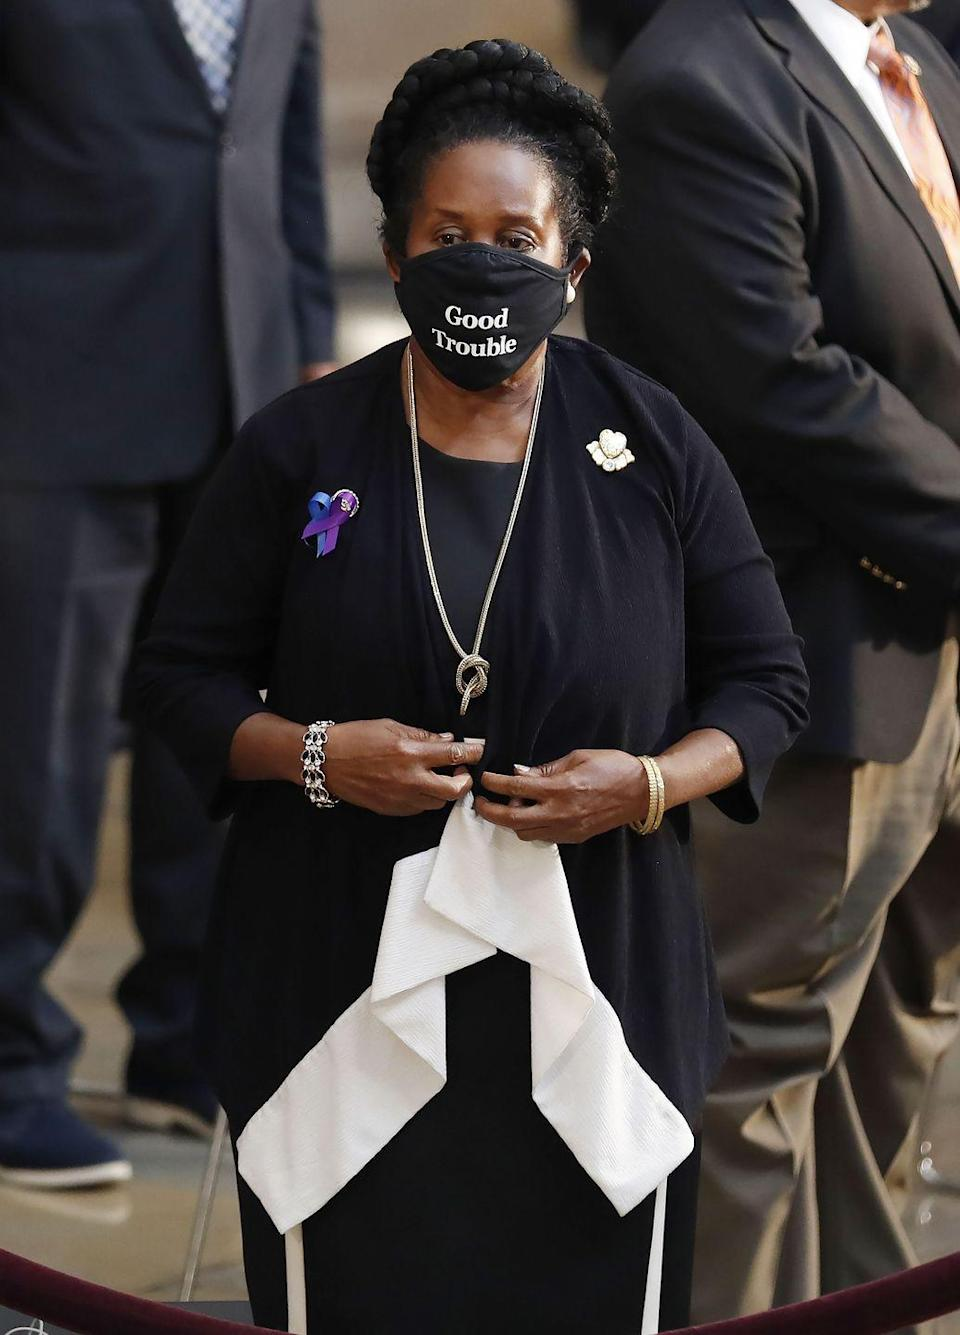 <p>Democratic Representative from Texas Sheila Jackson Lee stands during a ceremony preceding the lying in state of US Representative from Georgia John Lewis in the Rotunda of the US Capitol in Washington, DC, on July 27, 2020.</p>